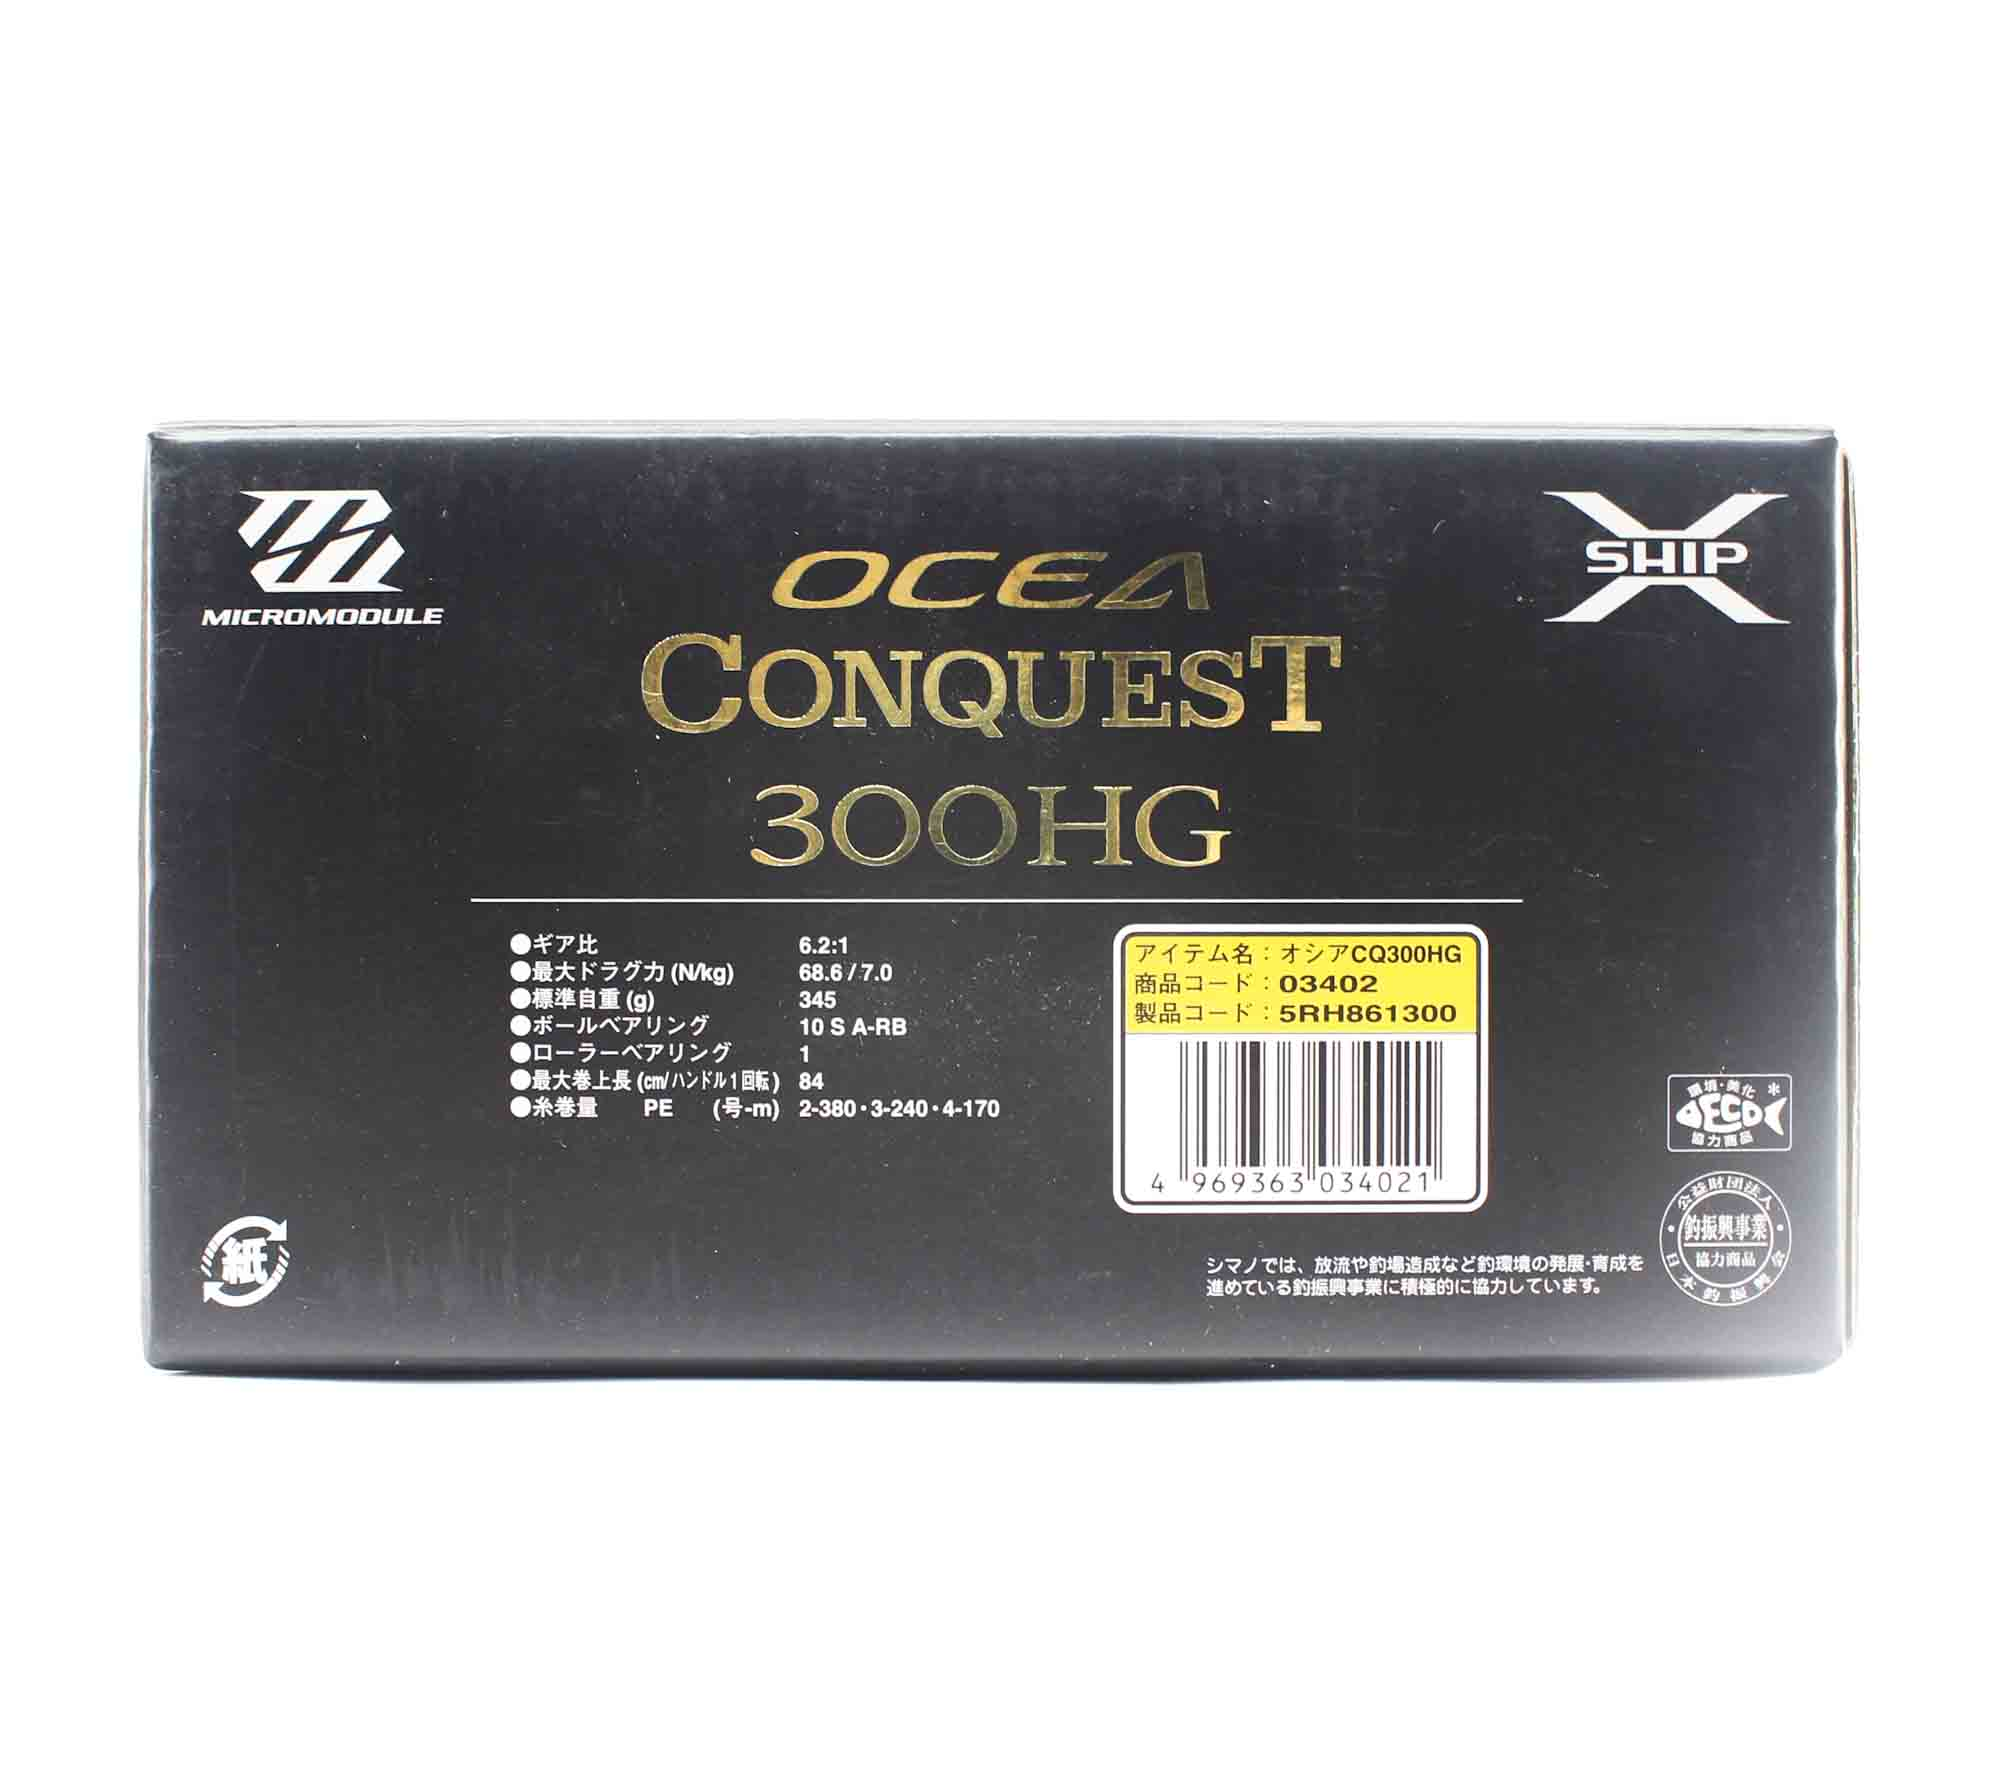 Shimano Reel Baitcast Ocea Conquest 300 HG Gold Right Hand (4021)